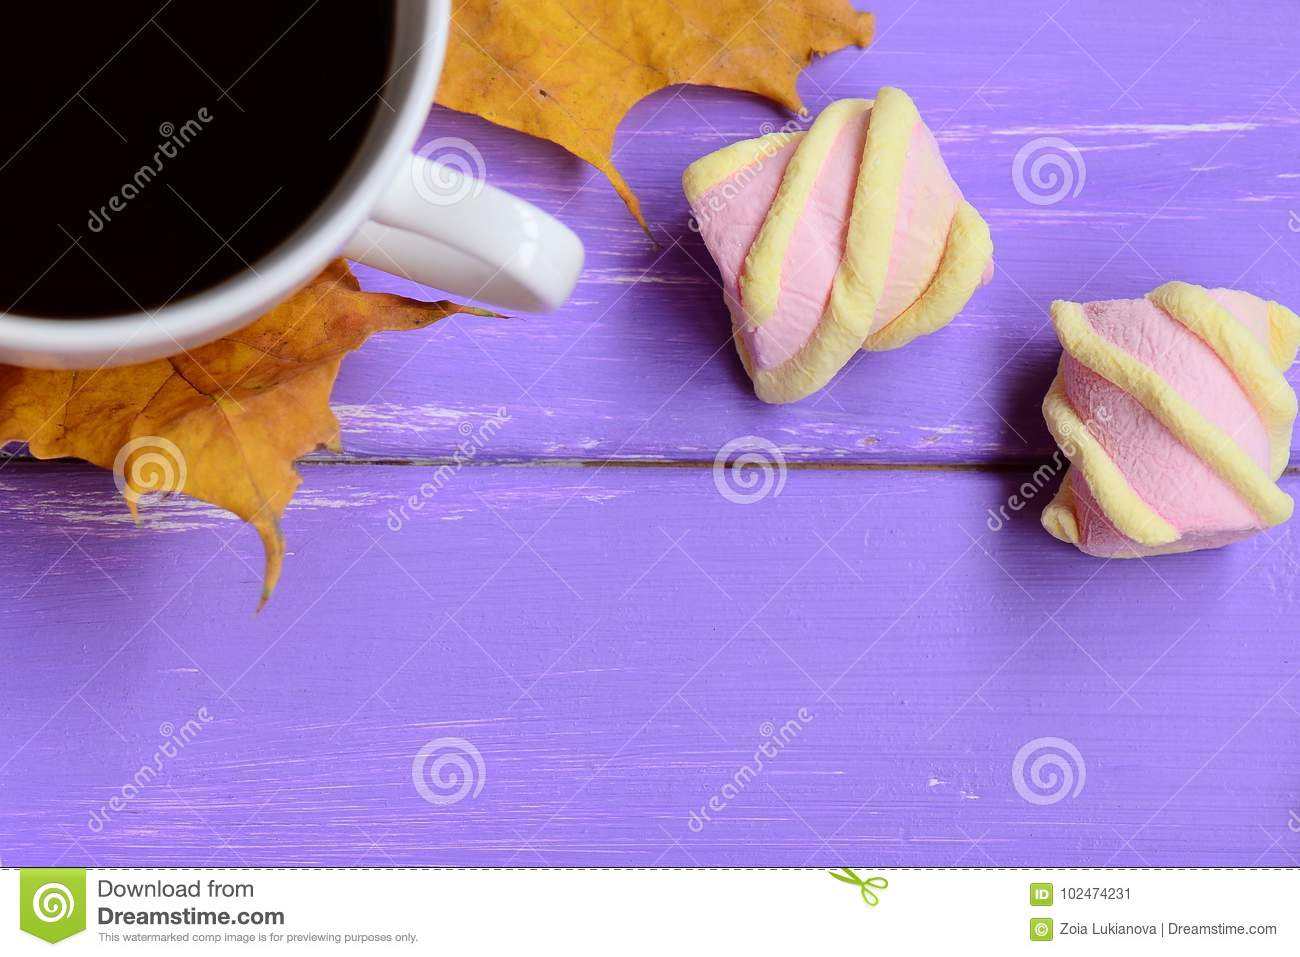 Light pink and yellow marshmallow, yellow autumn leaves, coffee cup on a purple wooden background. Easy autumn coffee break